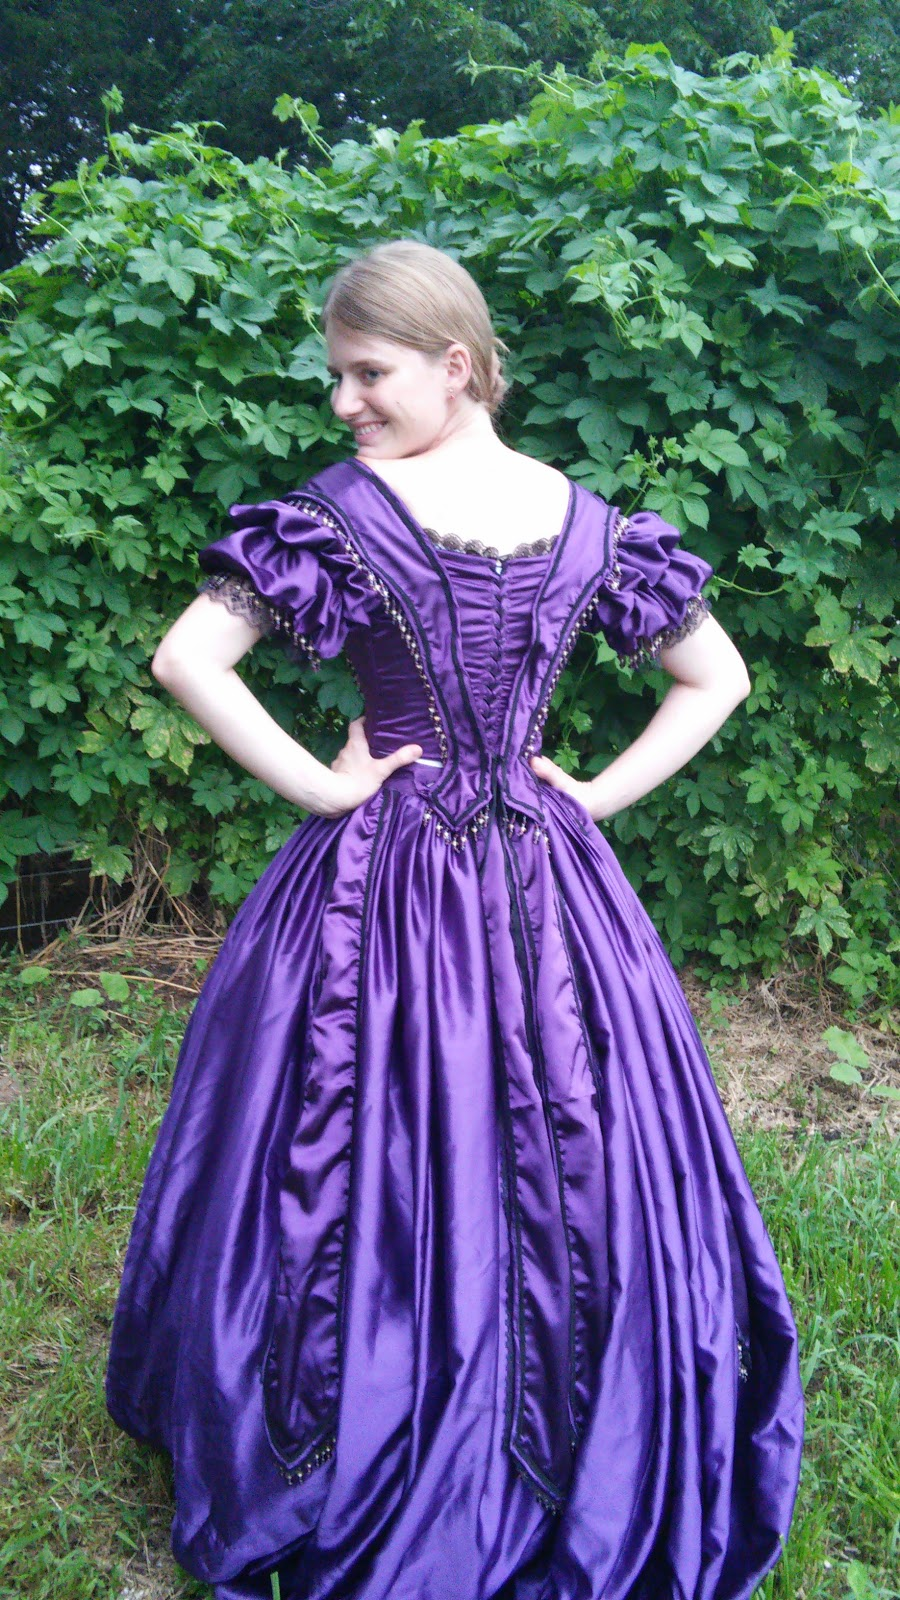 c6bacd9c2ec3d Now, I have been calling this dress a ball gown, and it certainly looks  like one to our modern eyes, but actually it's not. Ball gowns in the mid  19th ...